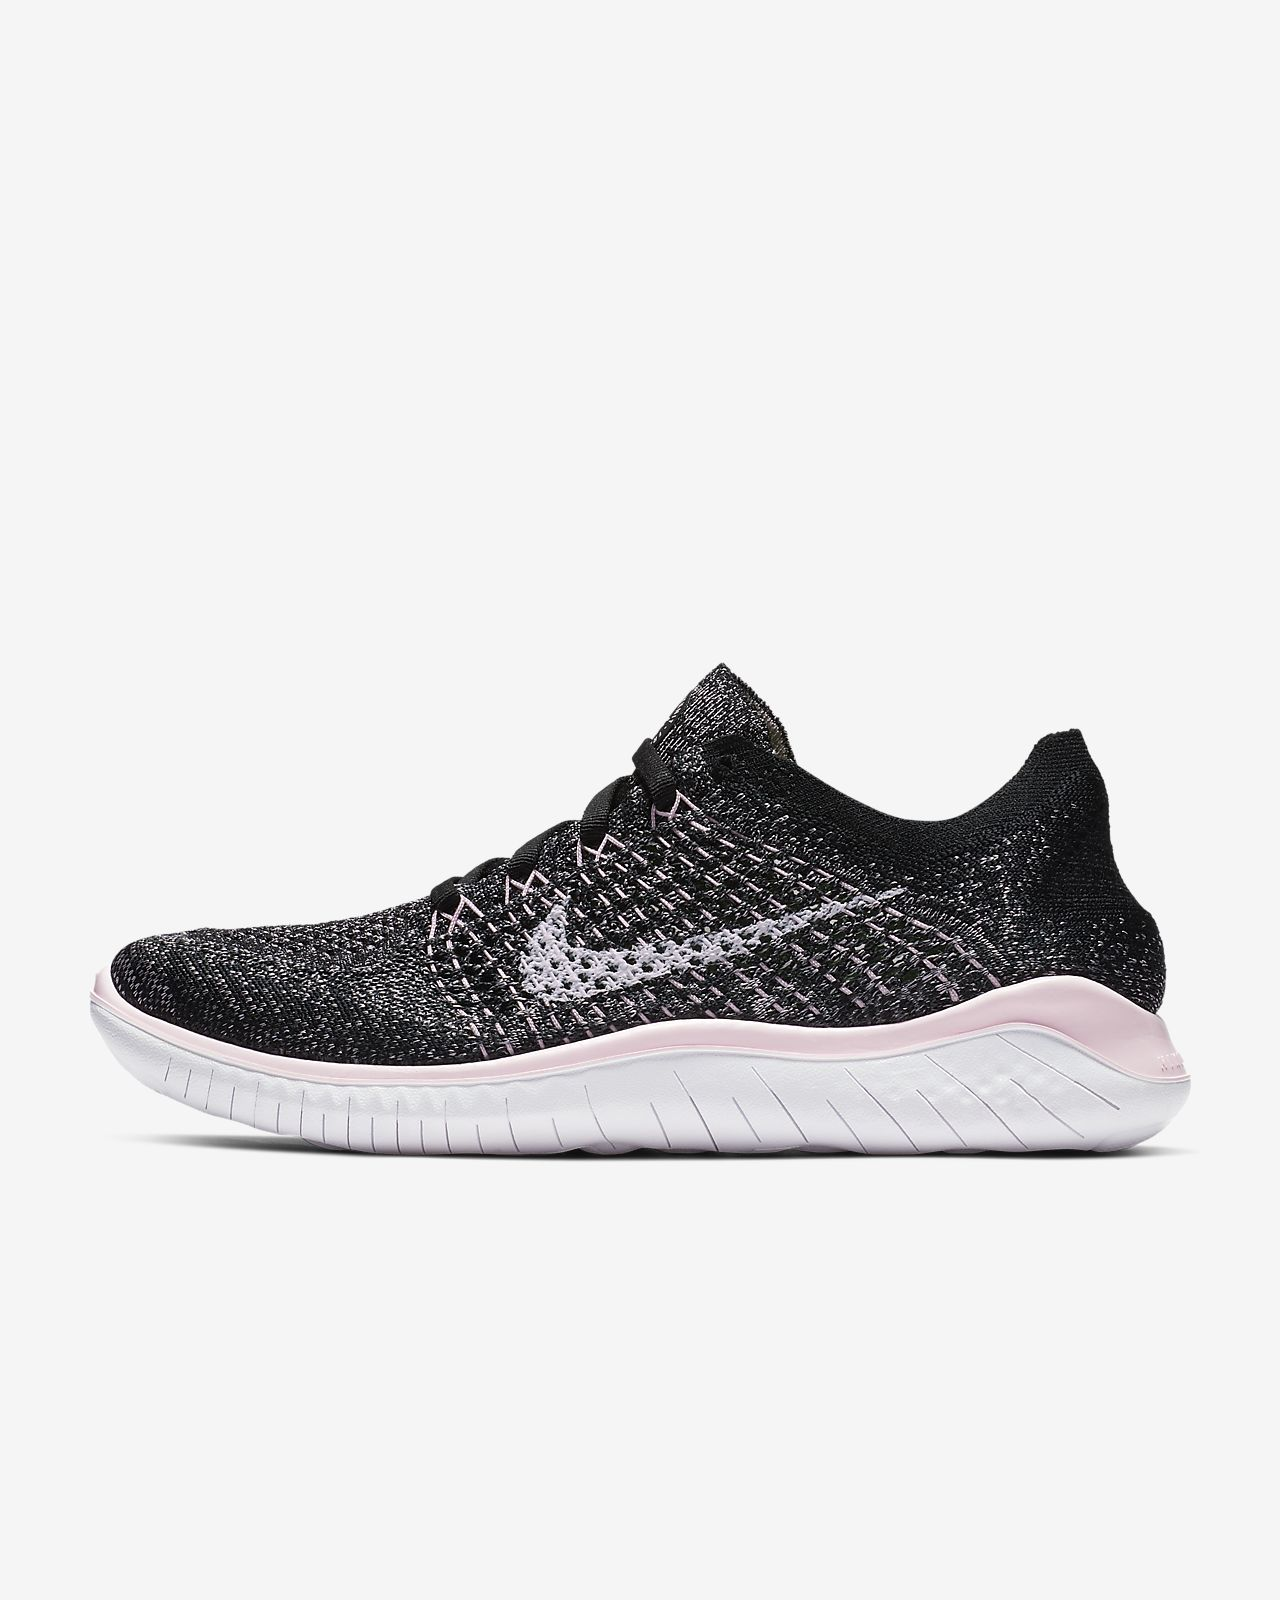 designer fashion a69a3 aac1a Nike Free RN Flyknit 2018 Women's Running Shoe